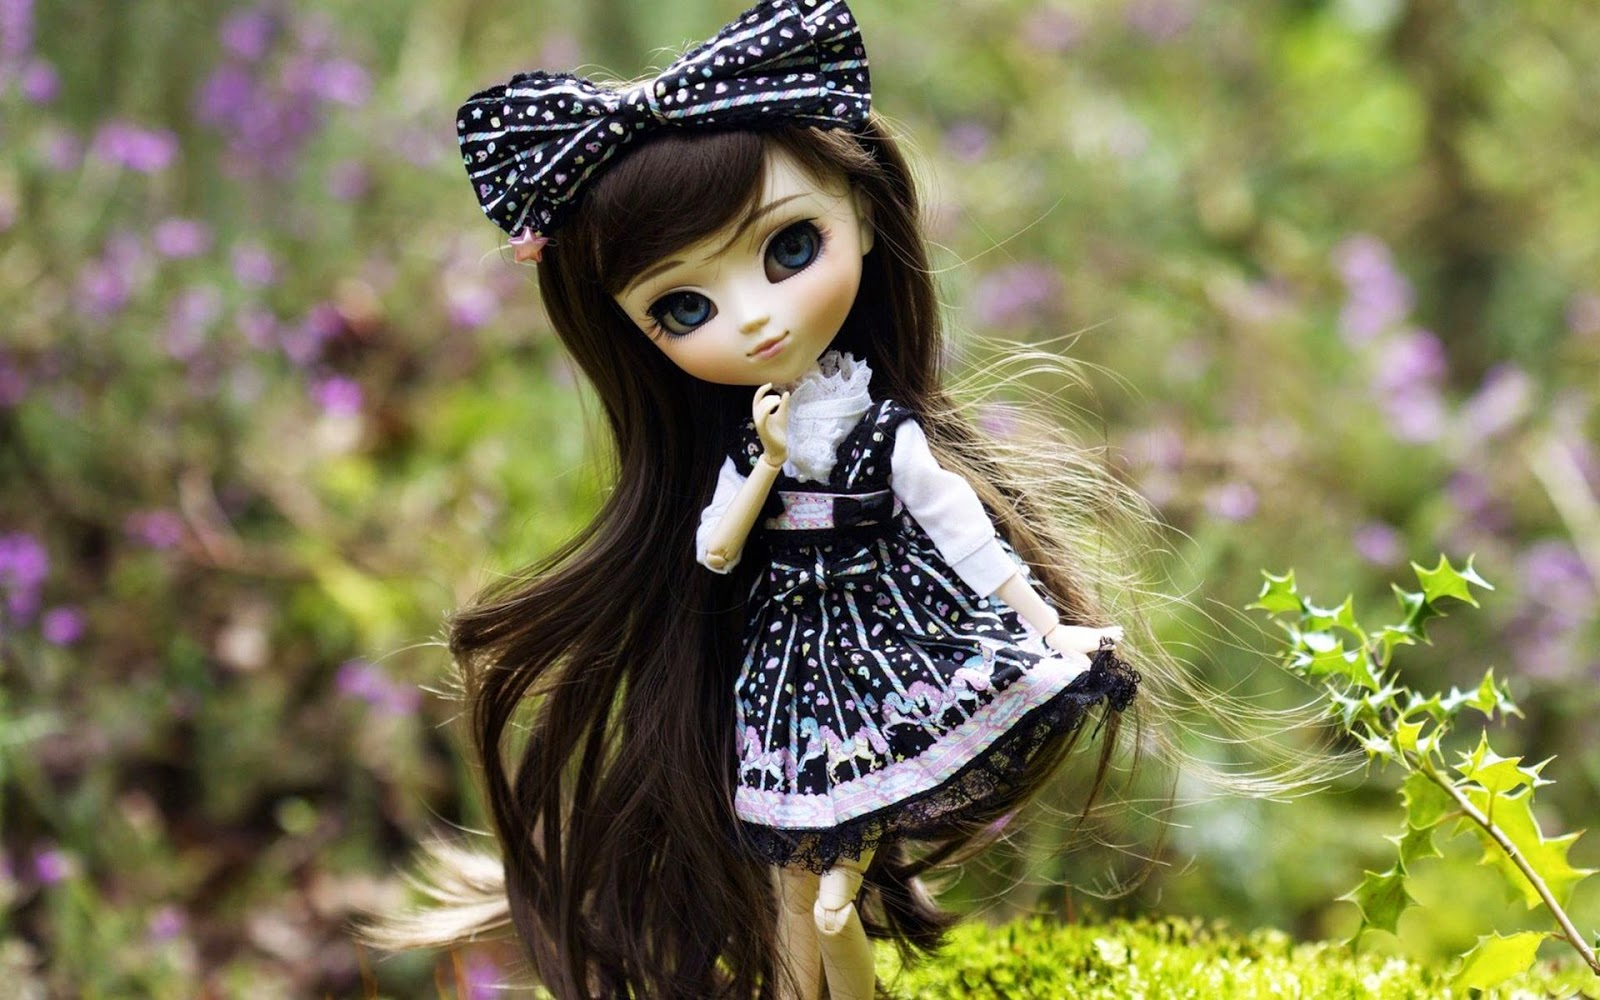 Cute Doll      Best Wallpapers 4 you 3D Angel  3D HD  Beautiful Dolls  Beautiful Easter Eggs  Beautiful Eyes   Beautiful Flowers  Beautiful Girl  Beautiful HD Wallpapers